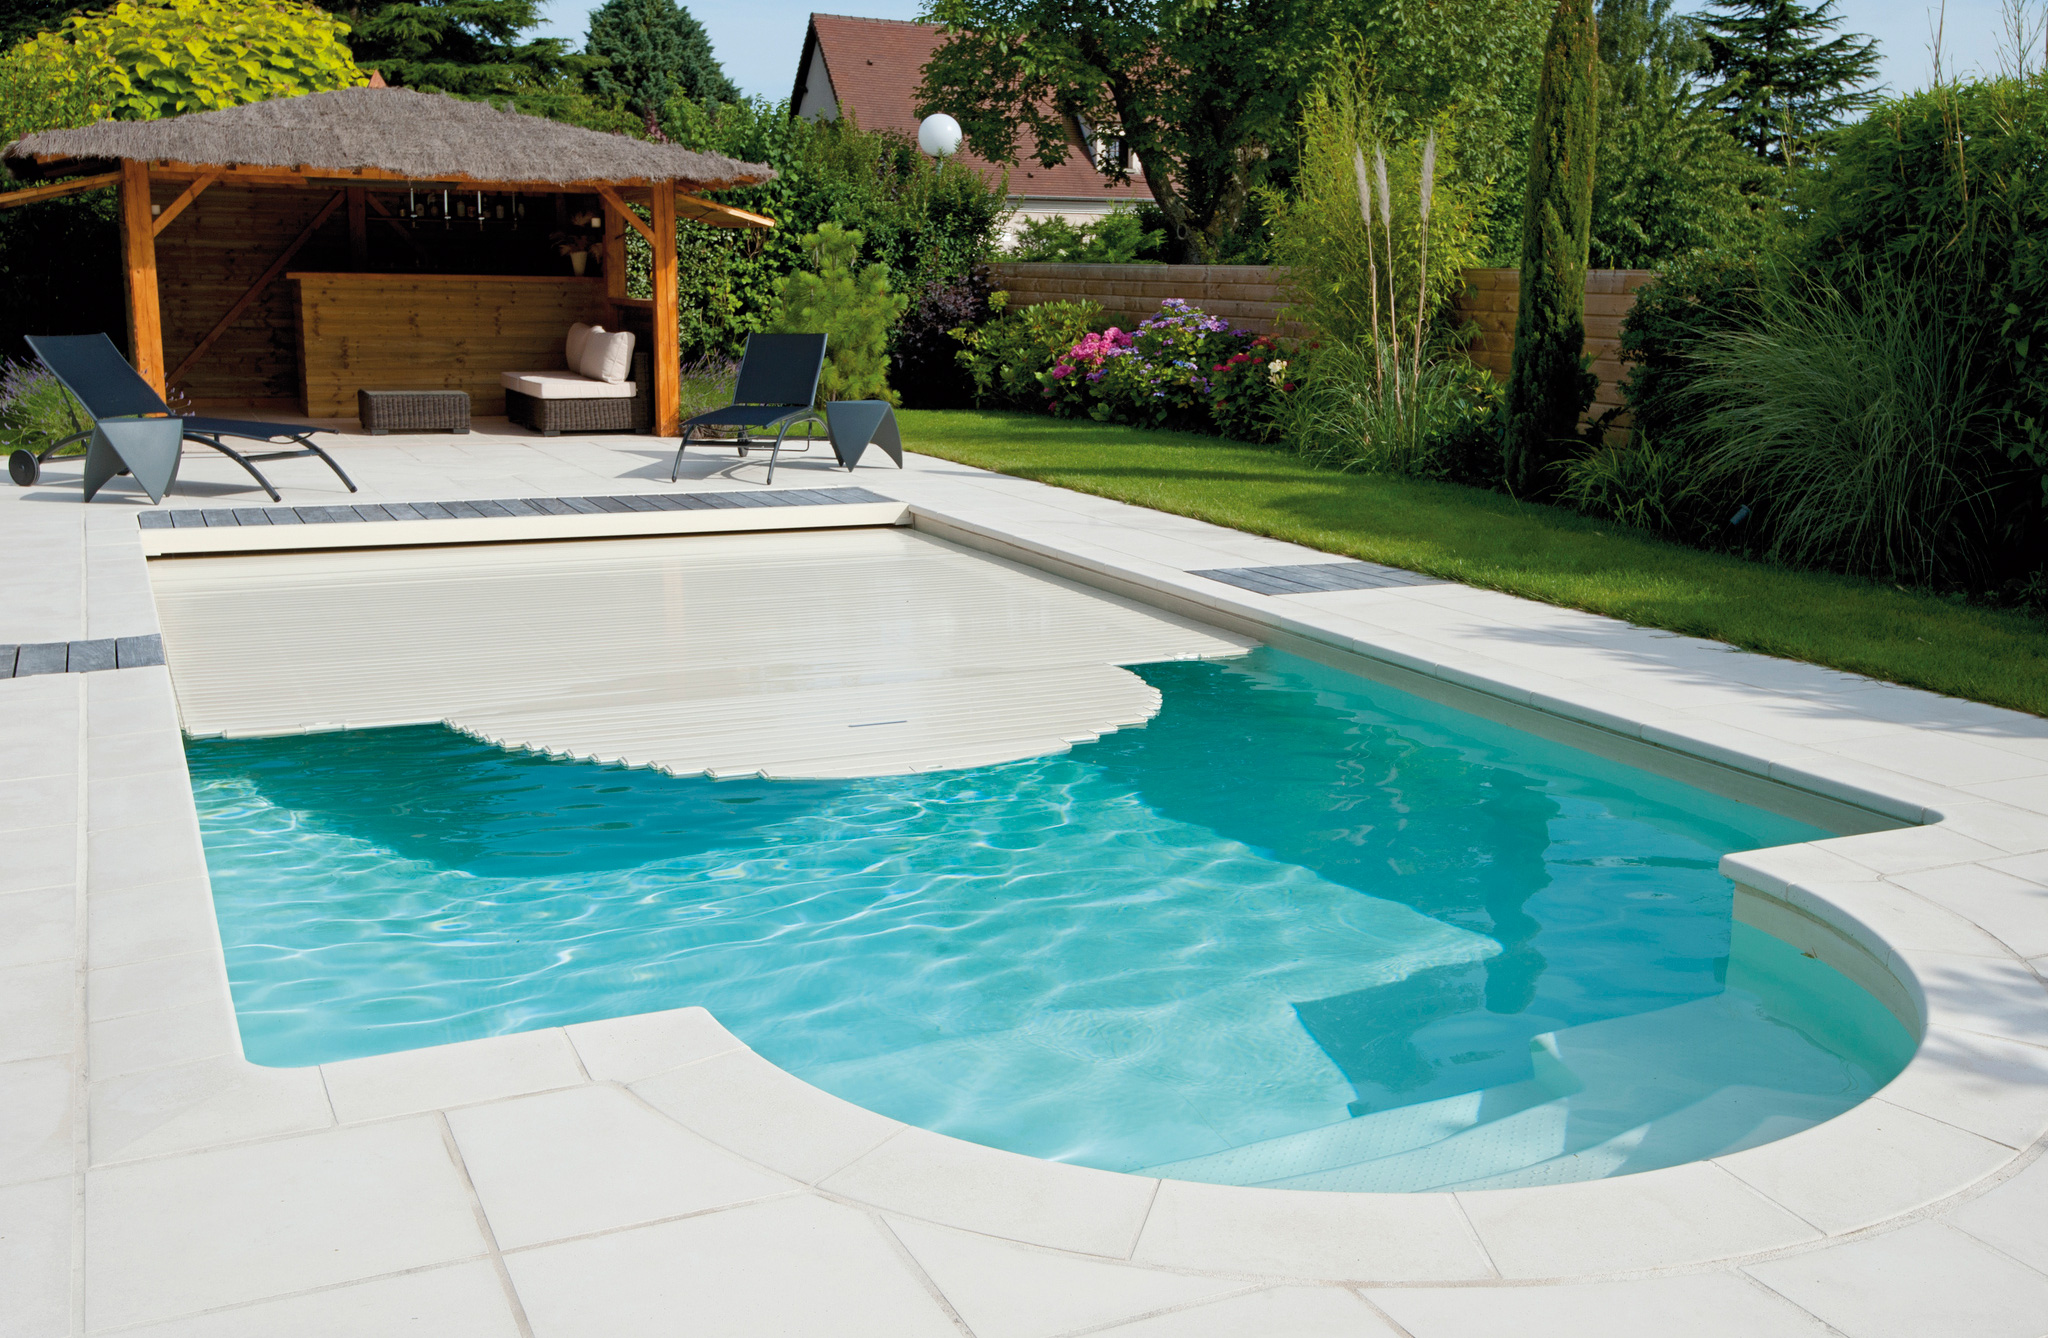 Extrem Poolabdeckung – Desjoyaux Pools YU85